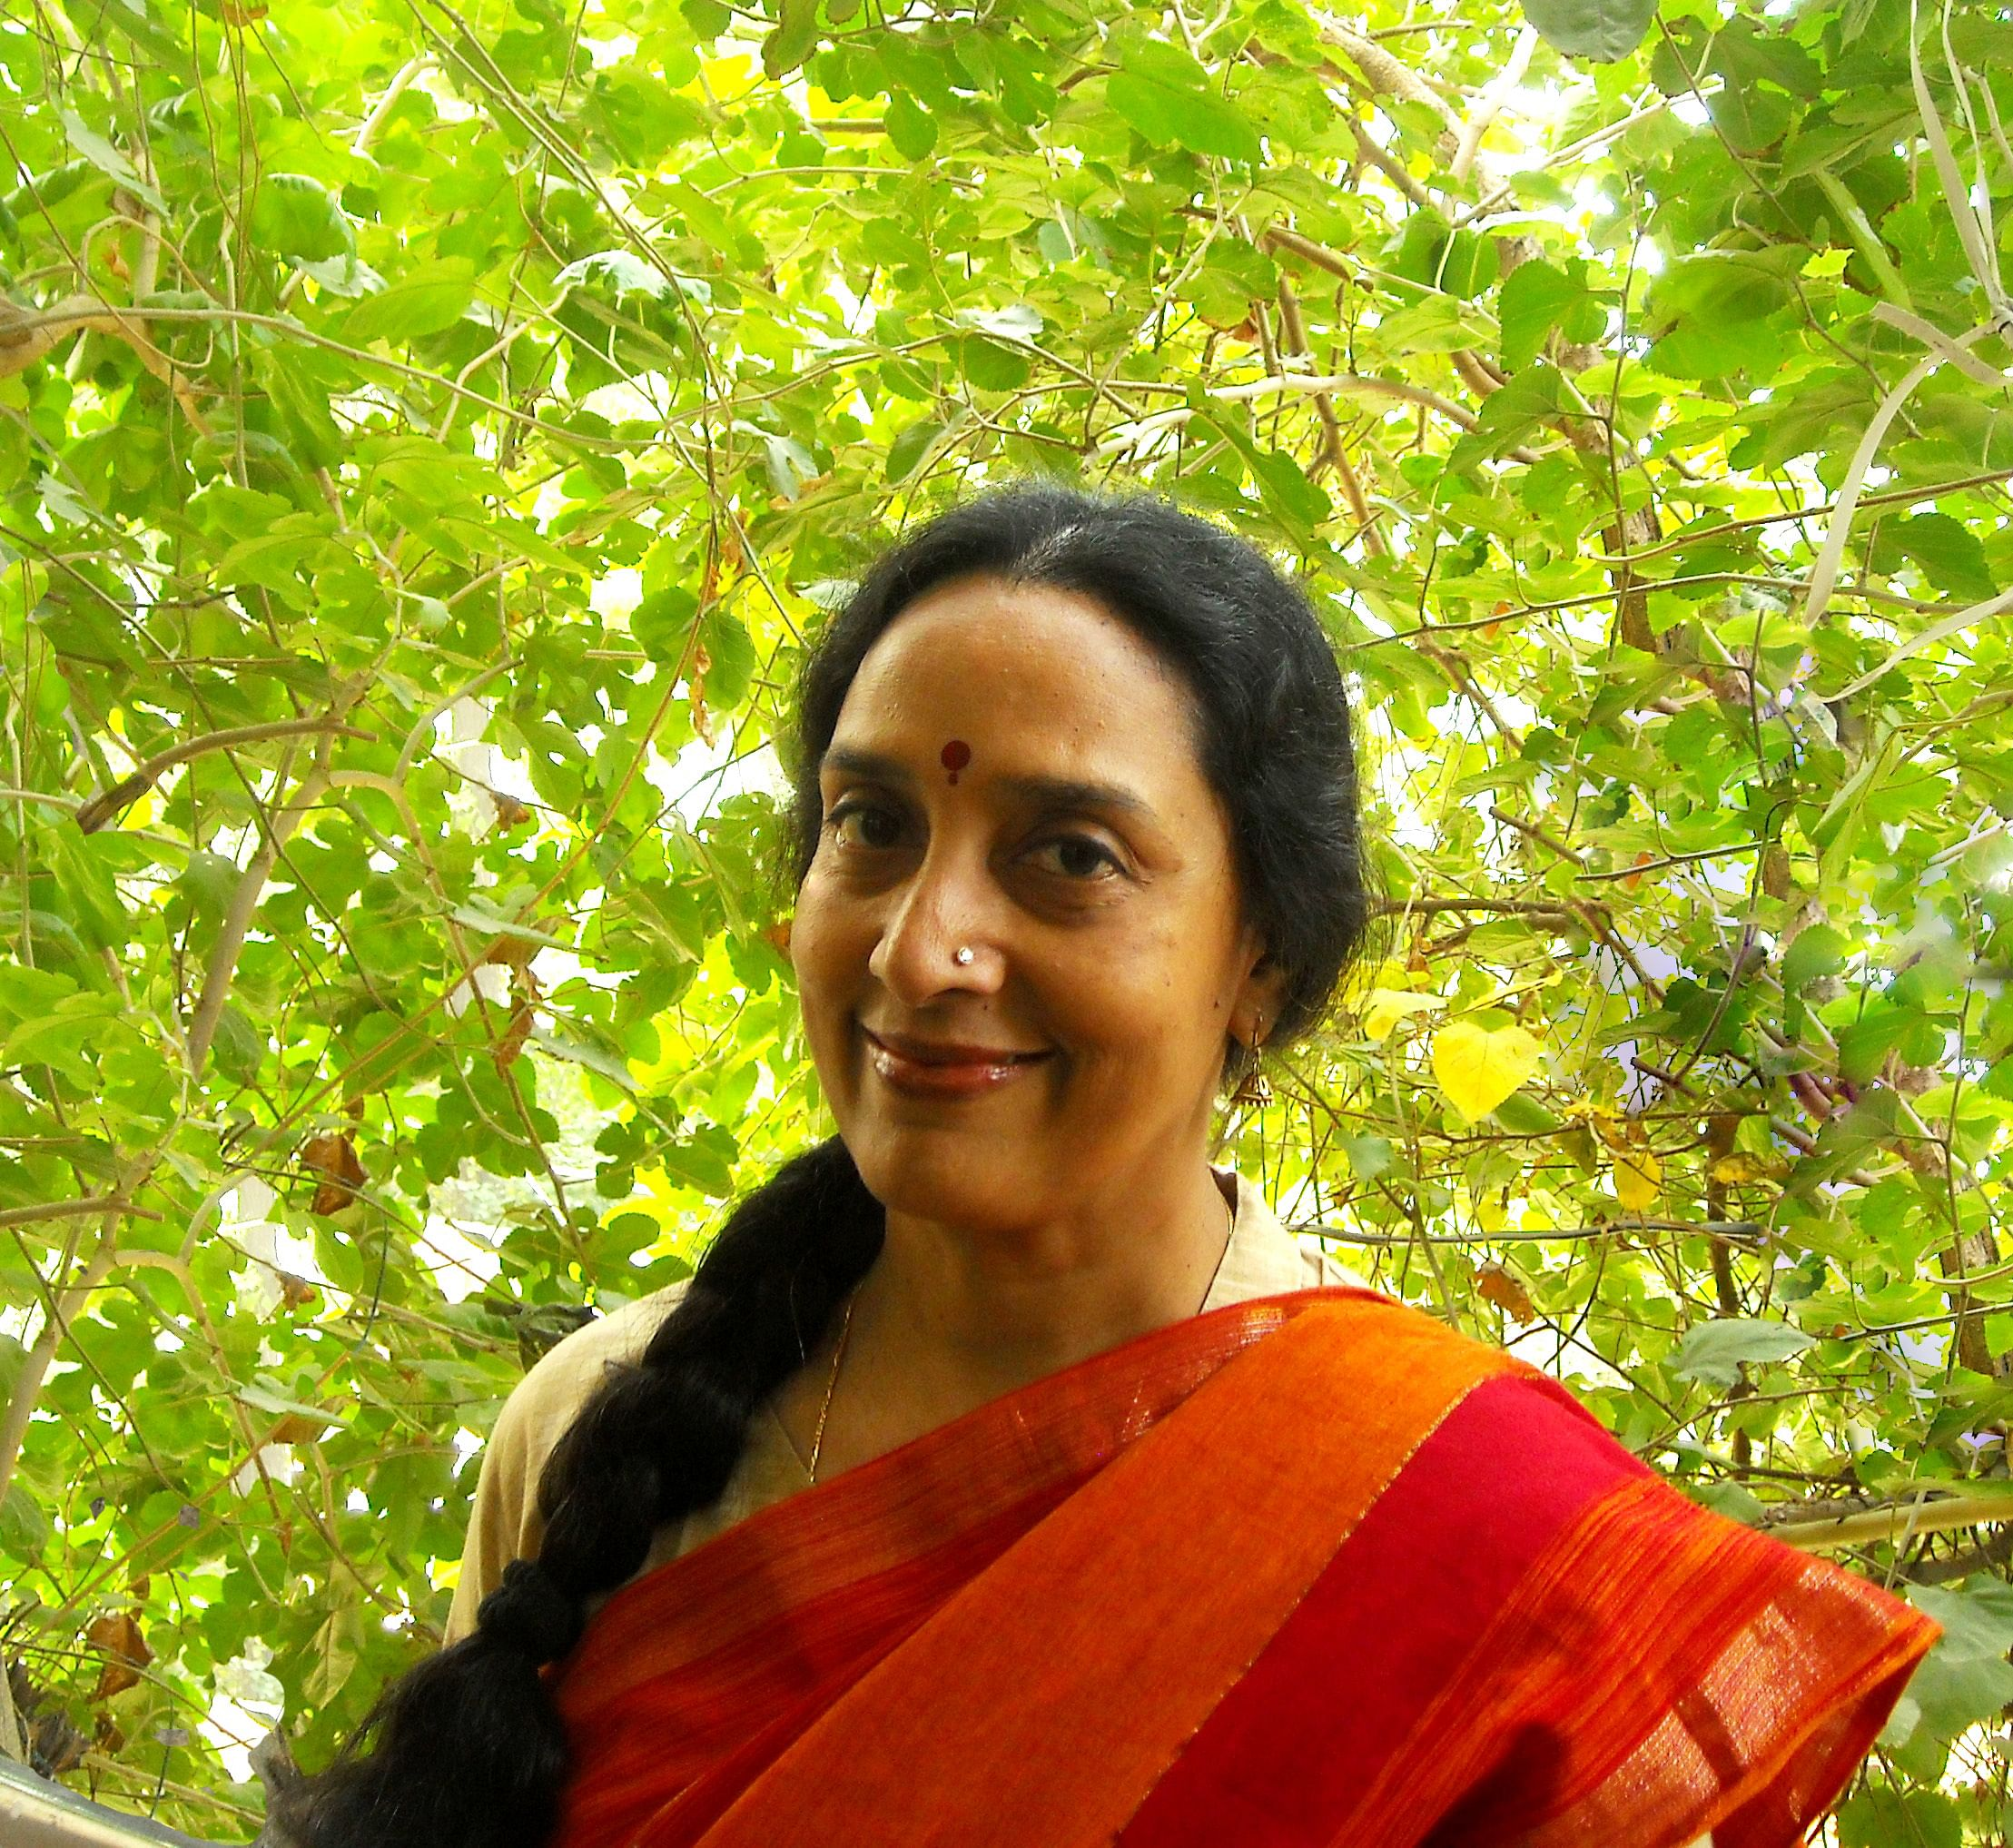 Malati Mathur is a PhD scholar is known for her brilliant English translations of works in Tamil and Hindi – notably the Thi Jaa's 'Remembering Amma'. (Credit: Venkat Parsa\WFS)